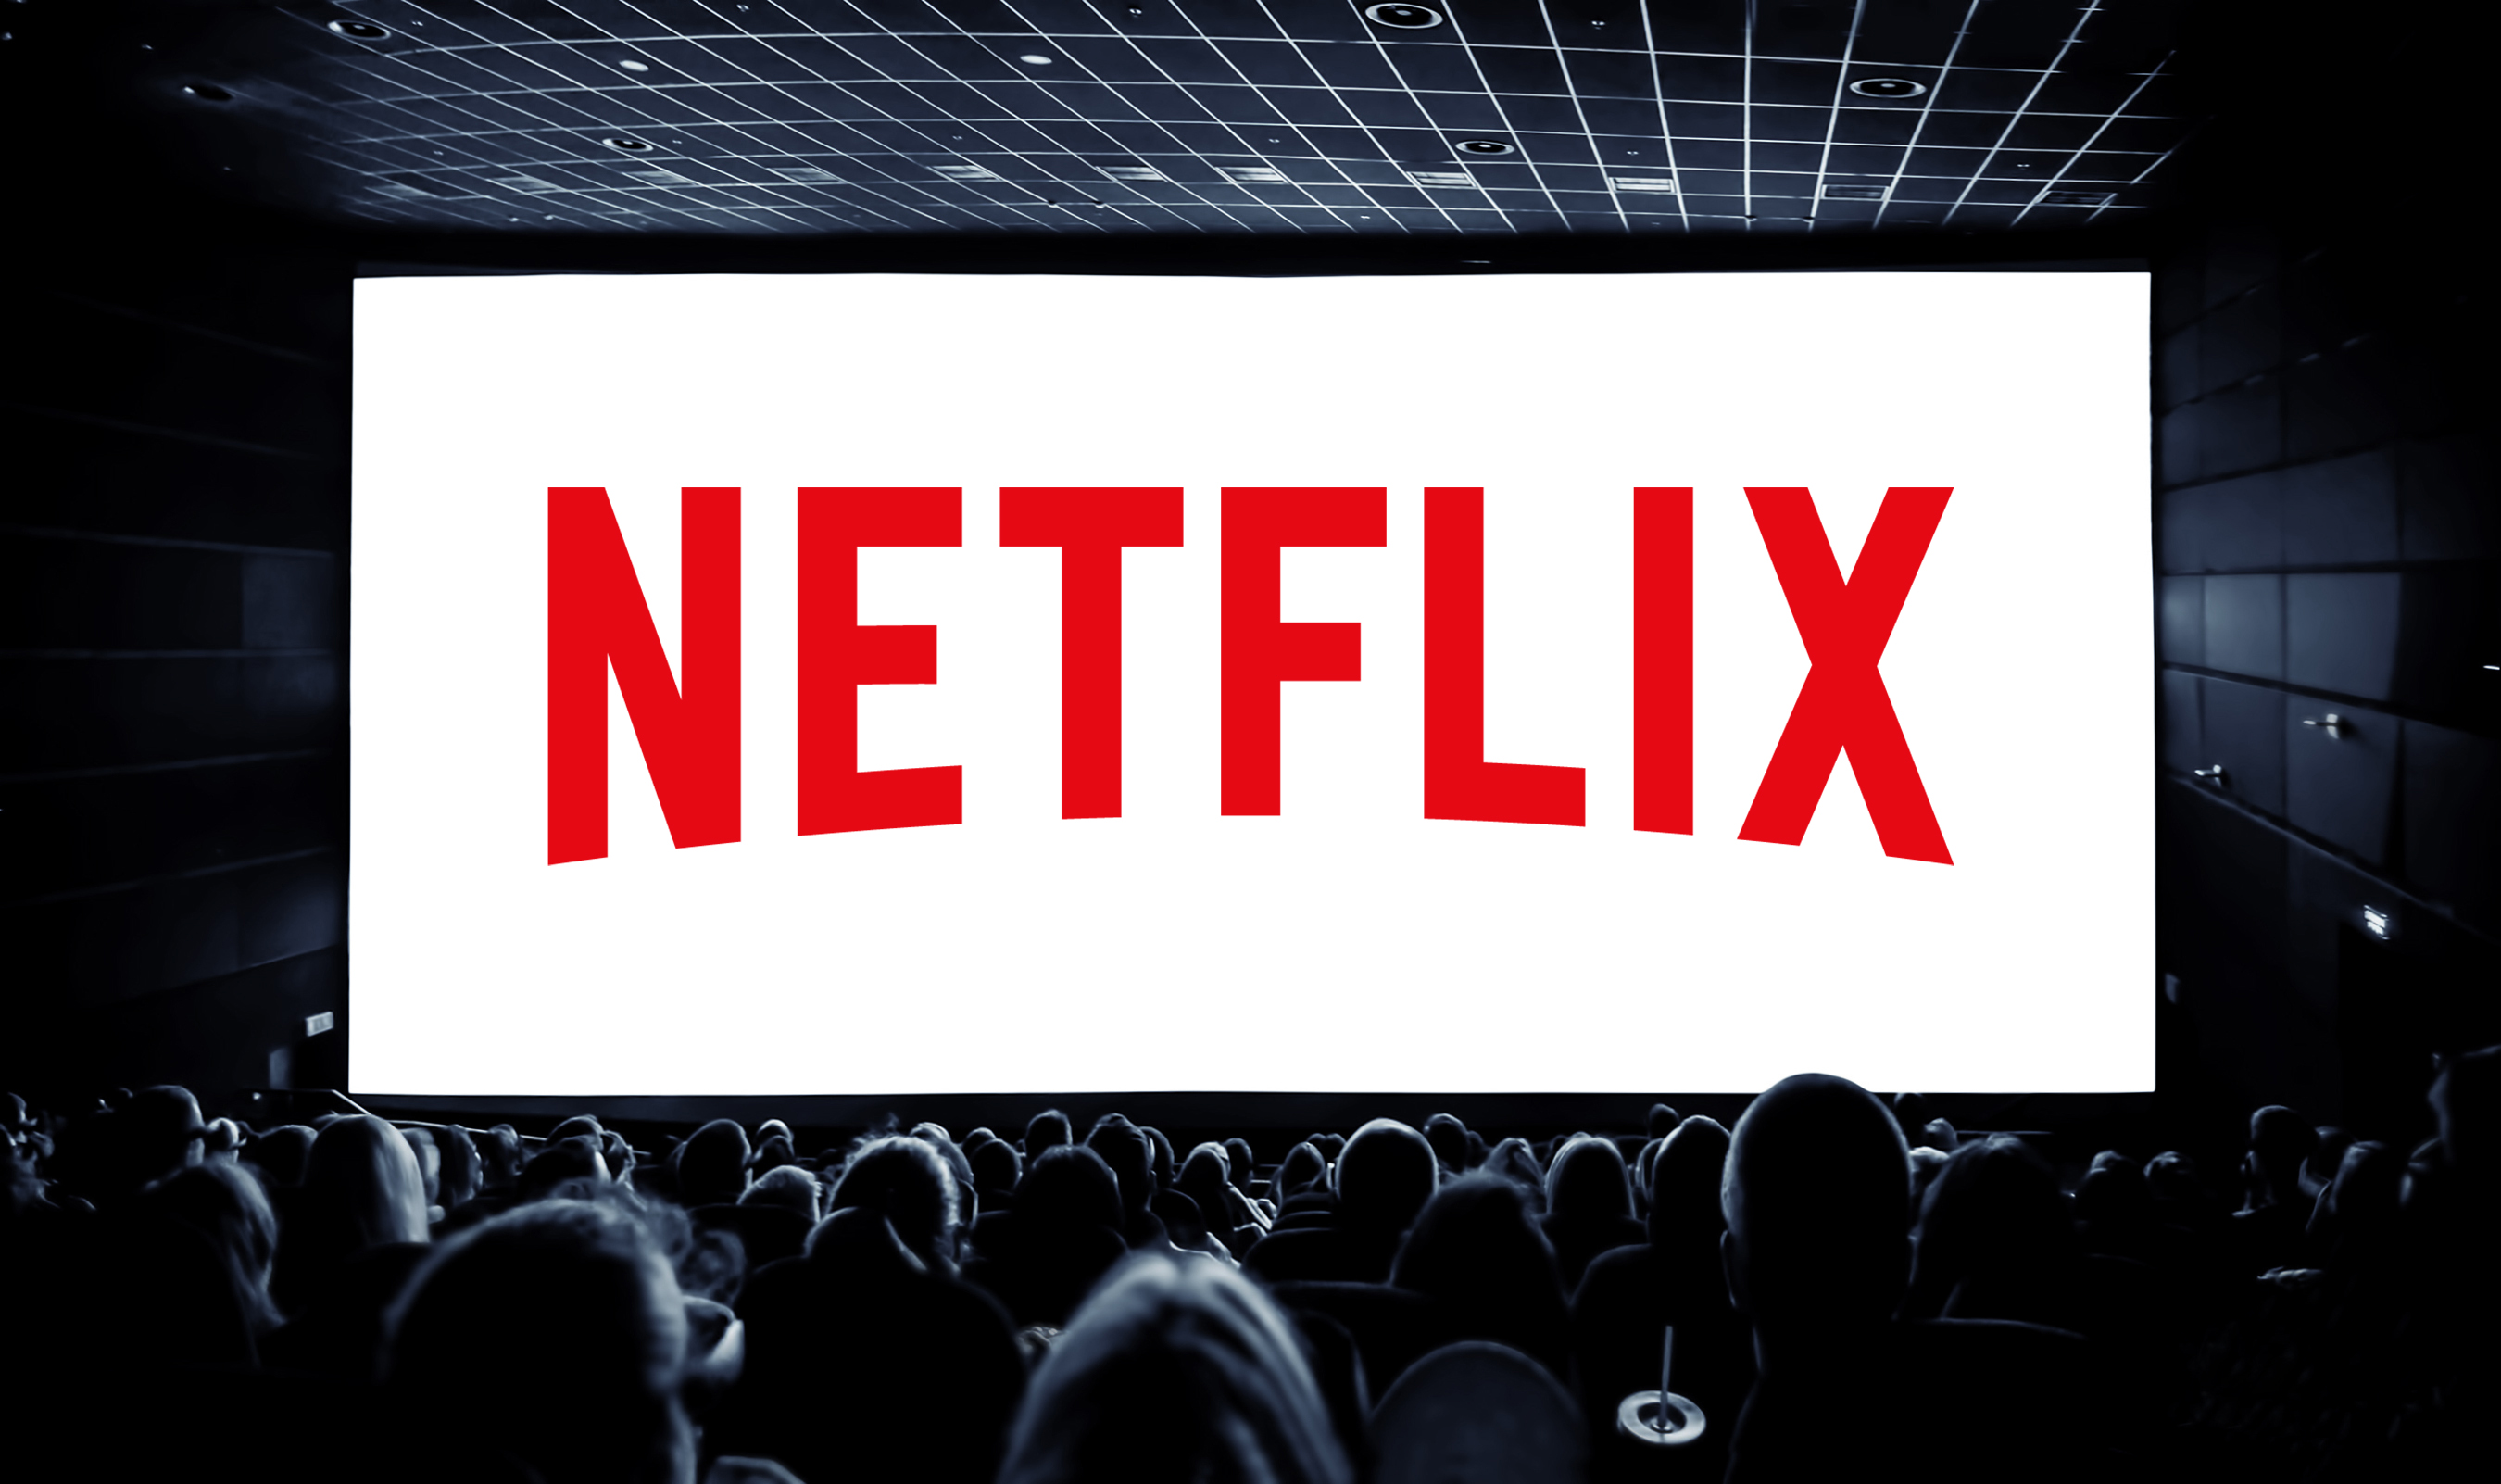 Netflix welcomed by MPAA but Department of Justice warns Academy about Oscar block.